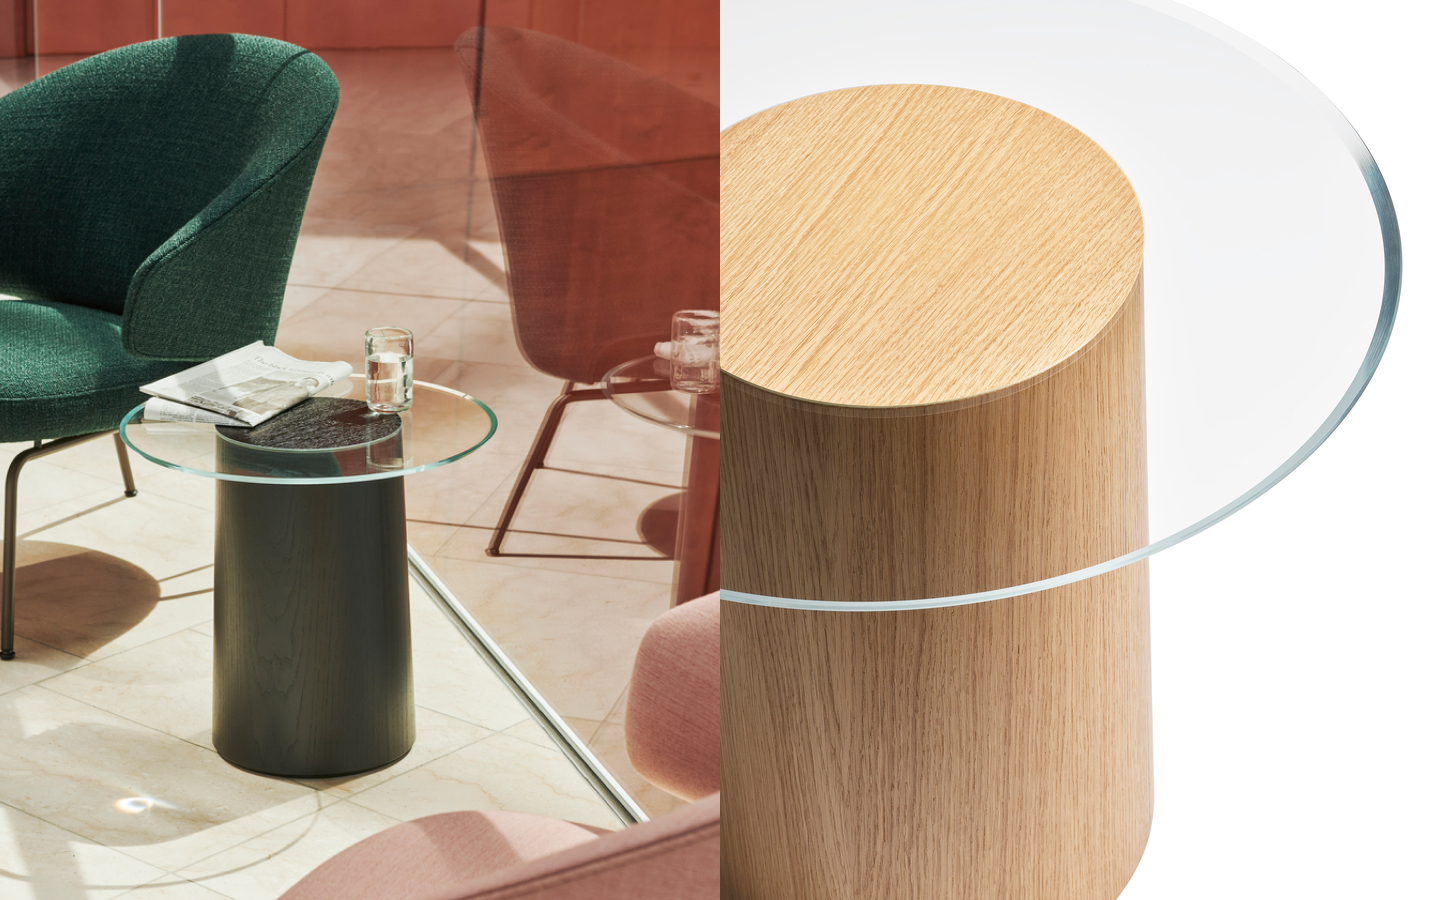 Small side table with round wooden base and glass table top